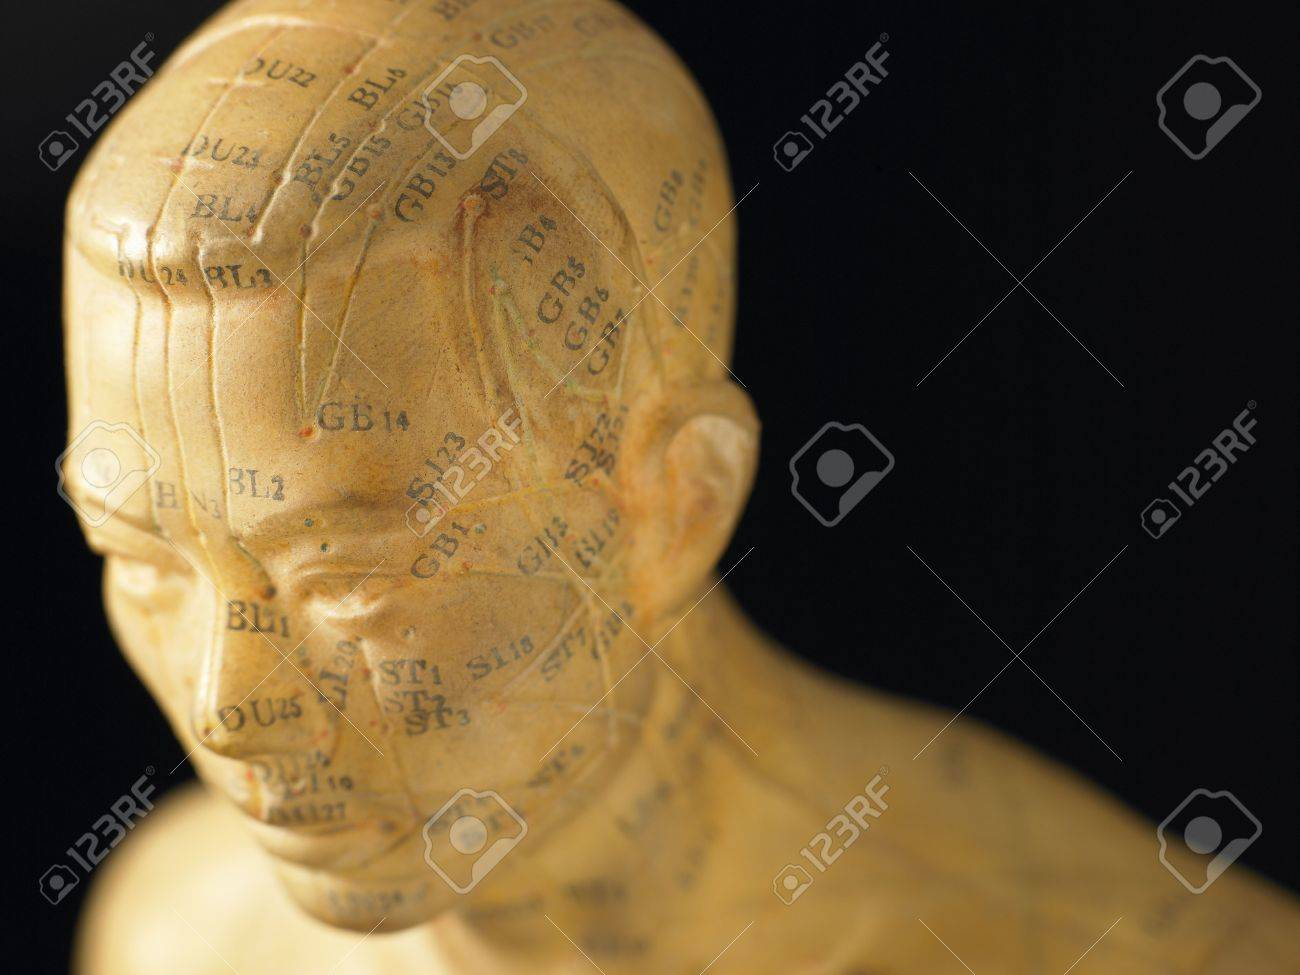 Meridian Lines On An Acupuncture Figurine Stock Photo - 4639022